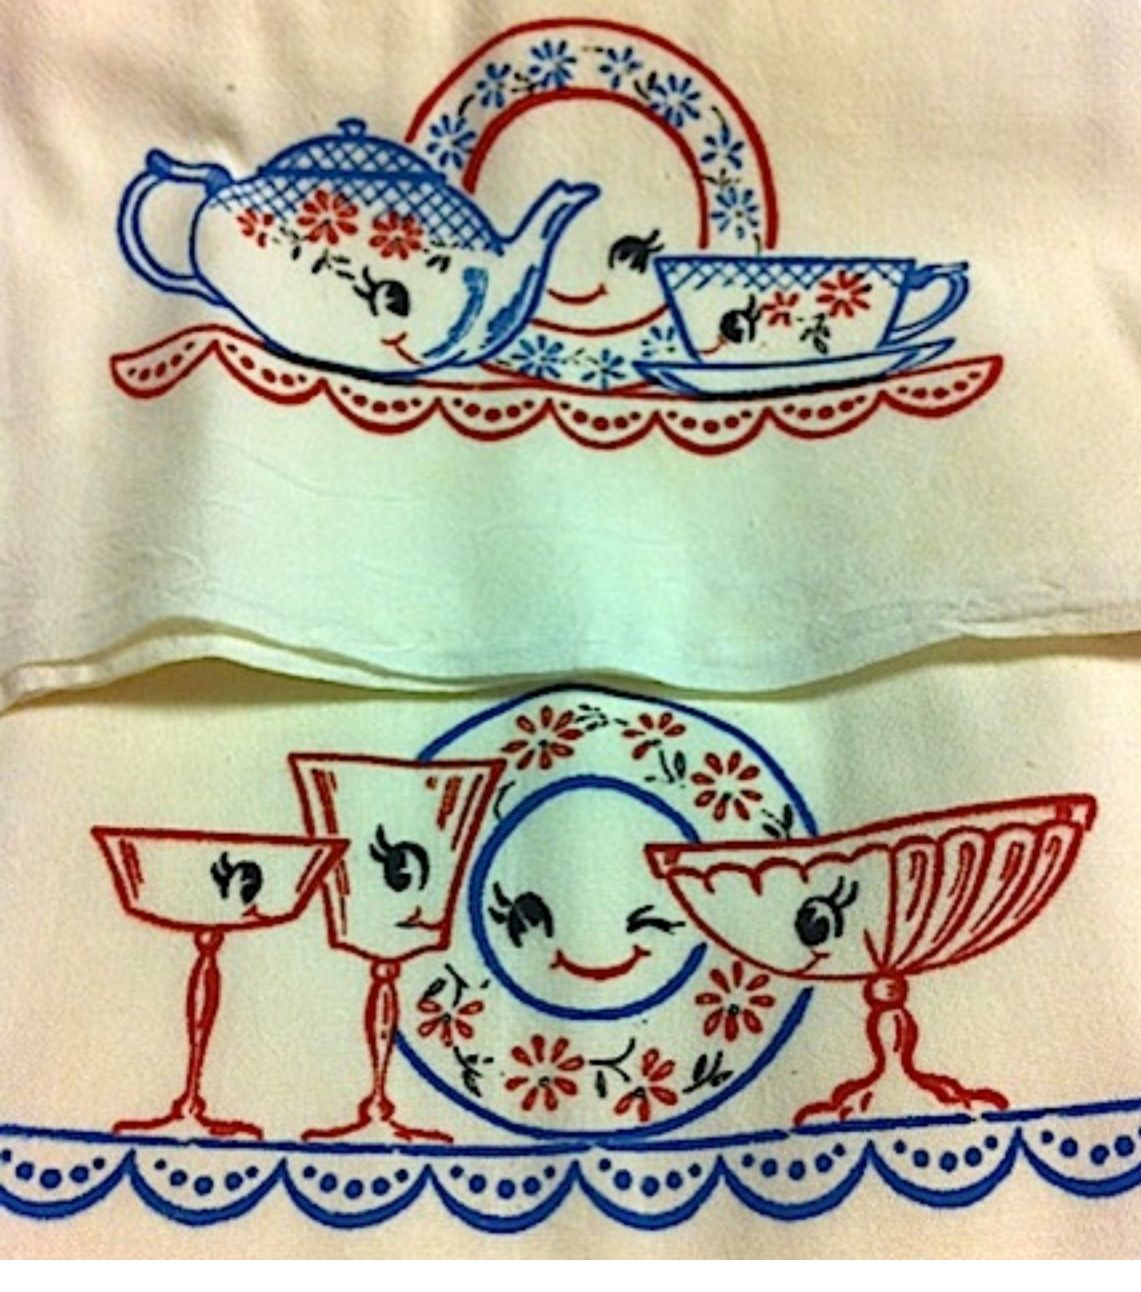 Vintage Kitchen Linens. Embroidered Tea Set And Dishes